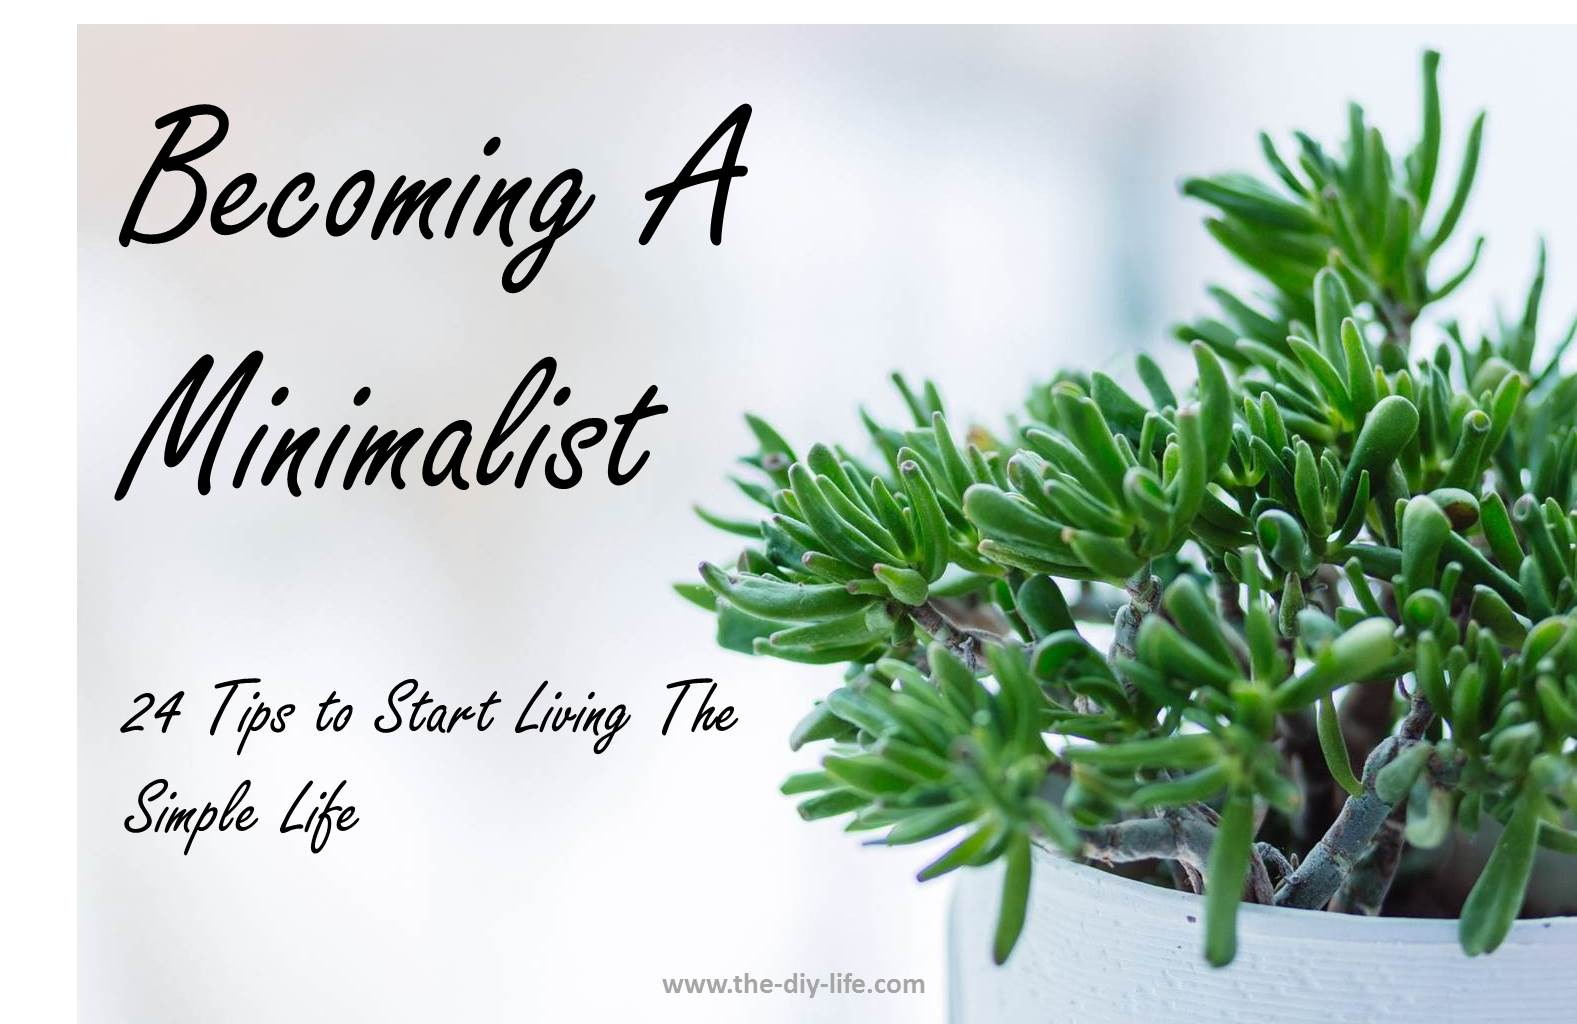 24 Tips On Becoming A Minimalist, Start Living The Simple Life Pinterest